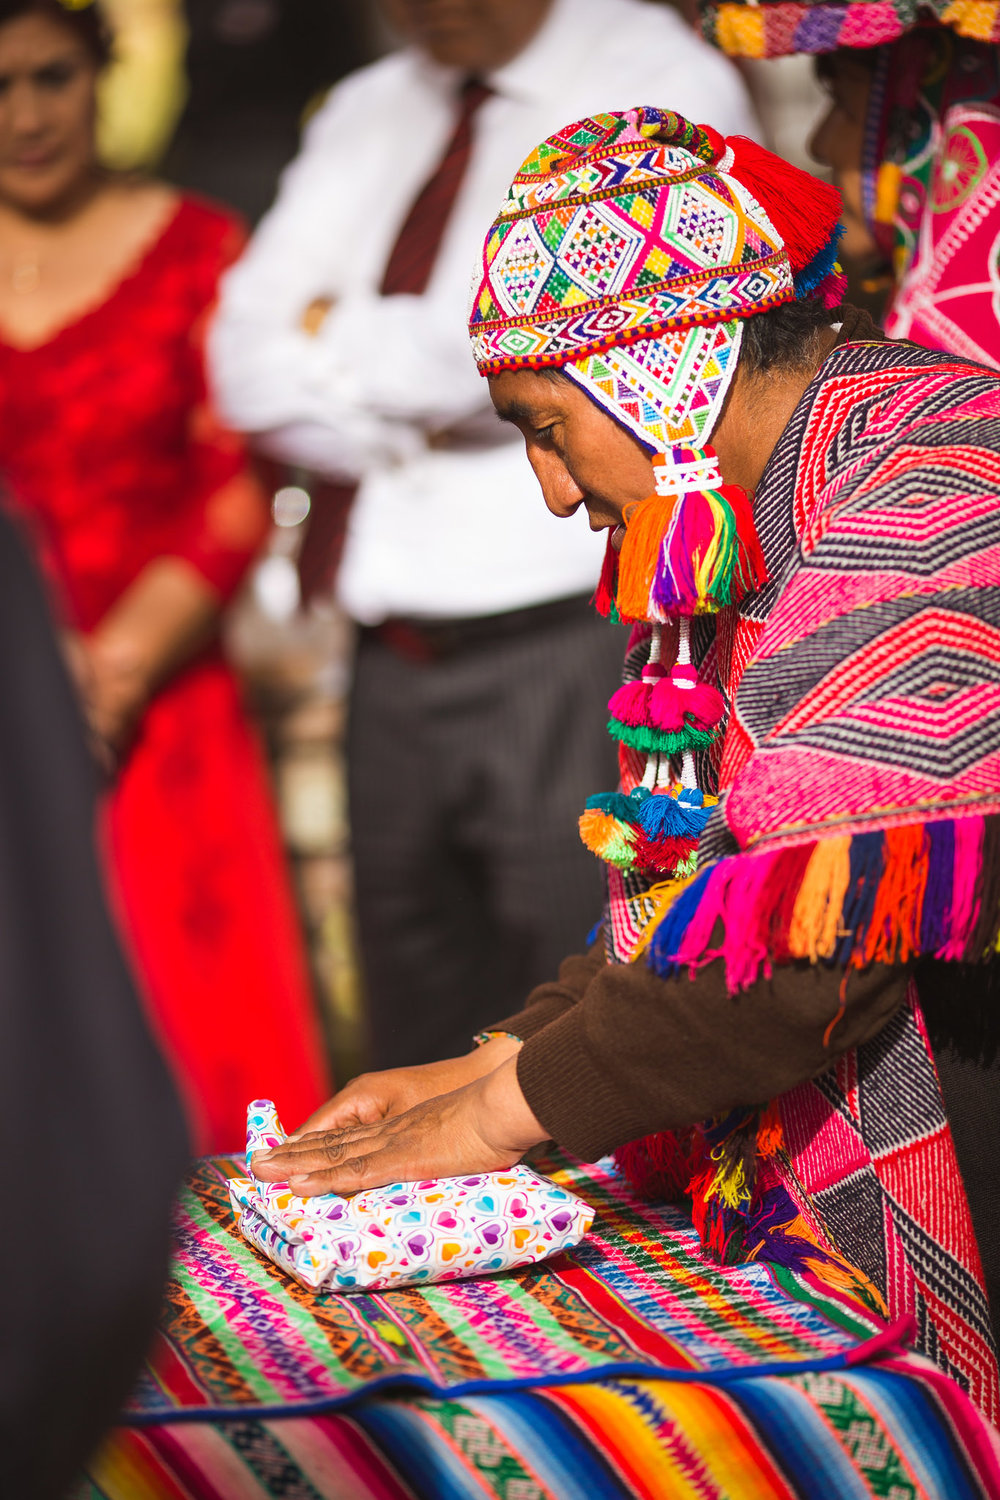 Wedding-Travellers-Destination-Wedding-Peru-Cusco-Hacienda-Sarapampa-Sacred-Valley-traditional-andean-ceremony-offer-pachamama-mother-earth-shaman